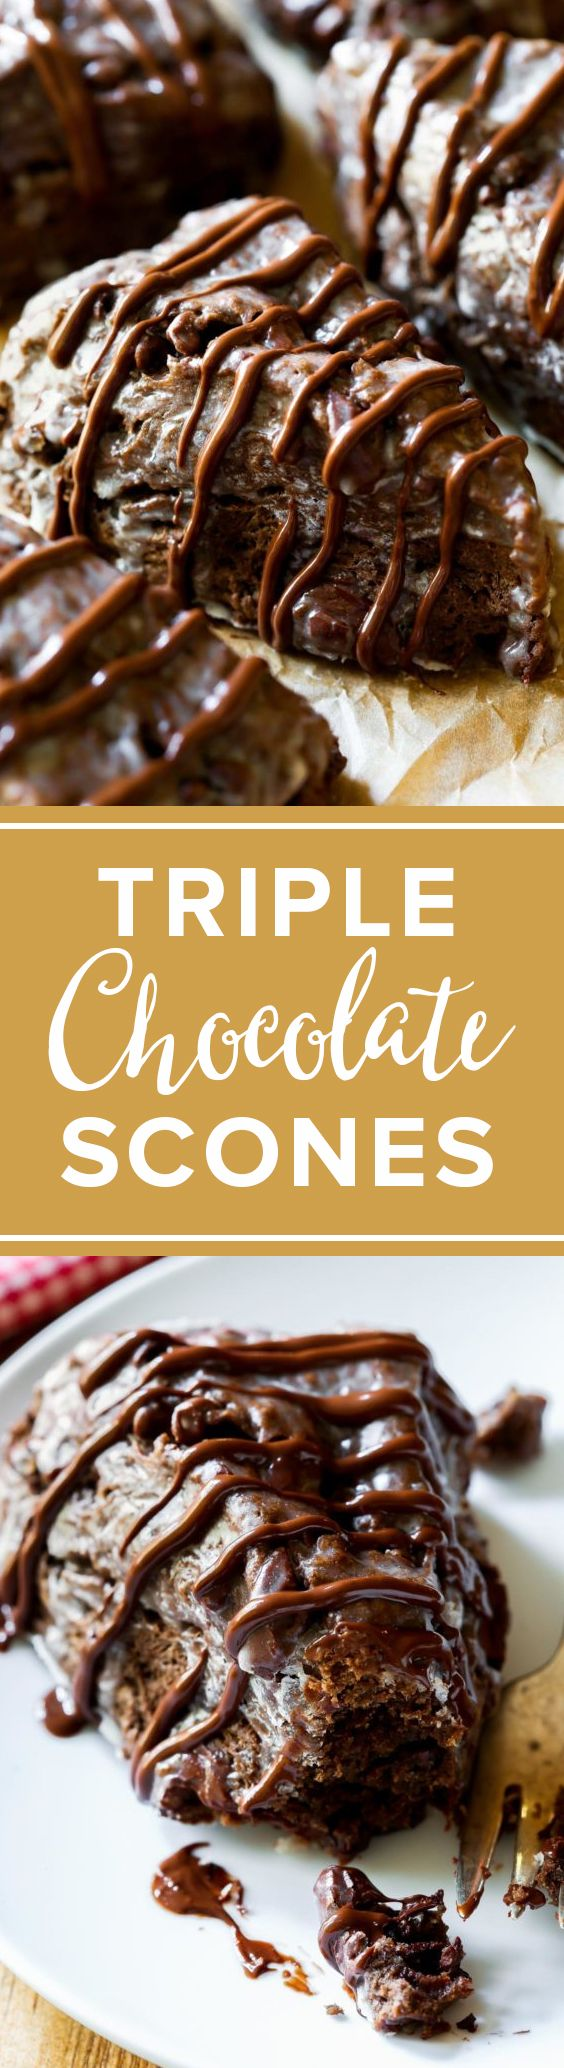 These crumbly, yet moist triple chocolate scones taste like warm brownies from the oven!!! Recipe http://sallysbakingaddiction.com/2014/11/10/triple-chocolate-scones-supreme/